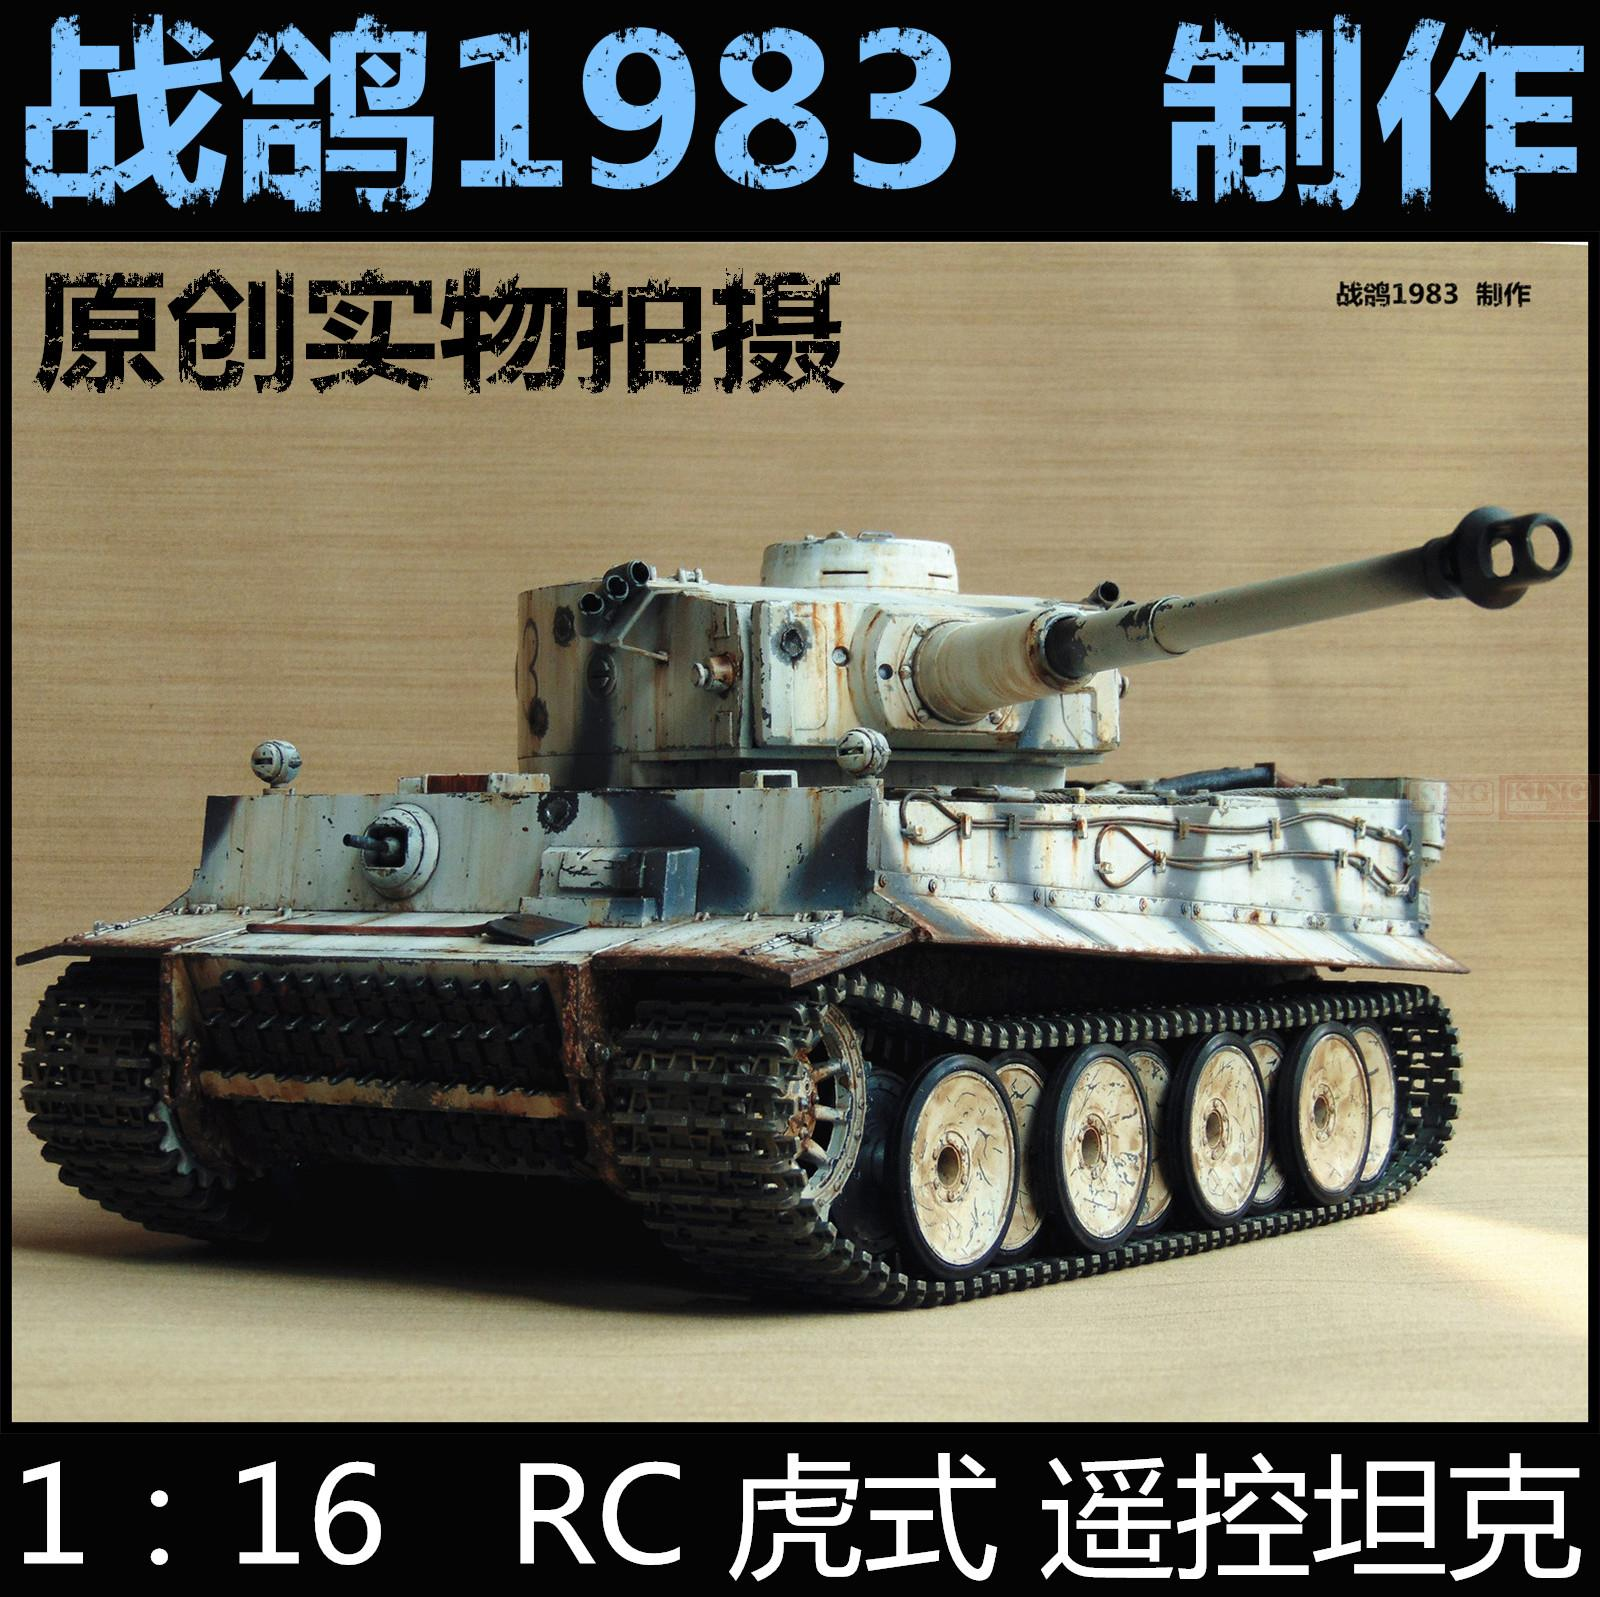 KNL HOBBY 1: 16RC Tiger tank model remote control OEM heavy coating of paint to do the old upgrade knl hobby voyager model pe35418 m1a1 tusk1 ubilan